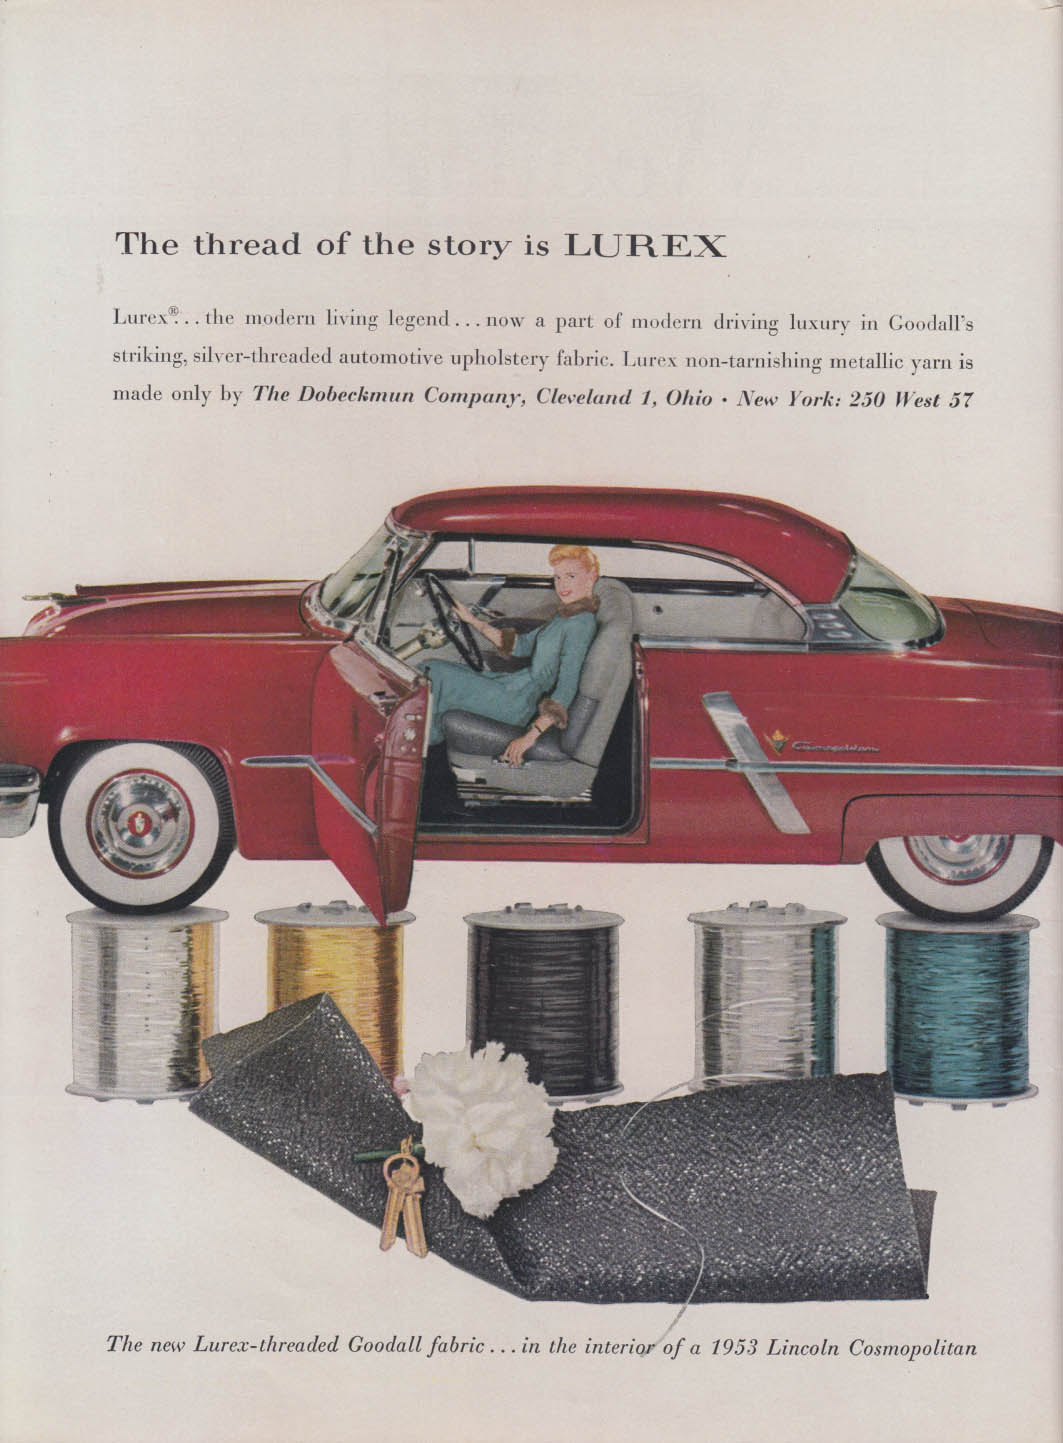 The thread of the story is Lurex in Lincoln Cosmopolitan ad 1953 NY